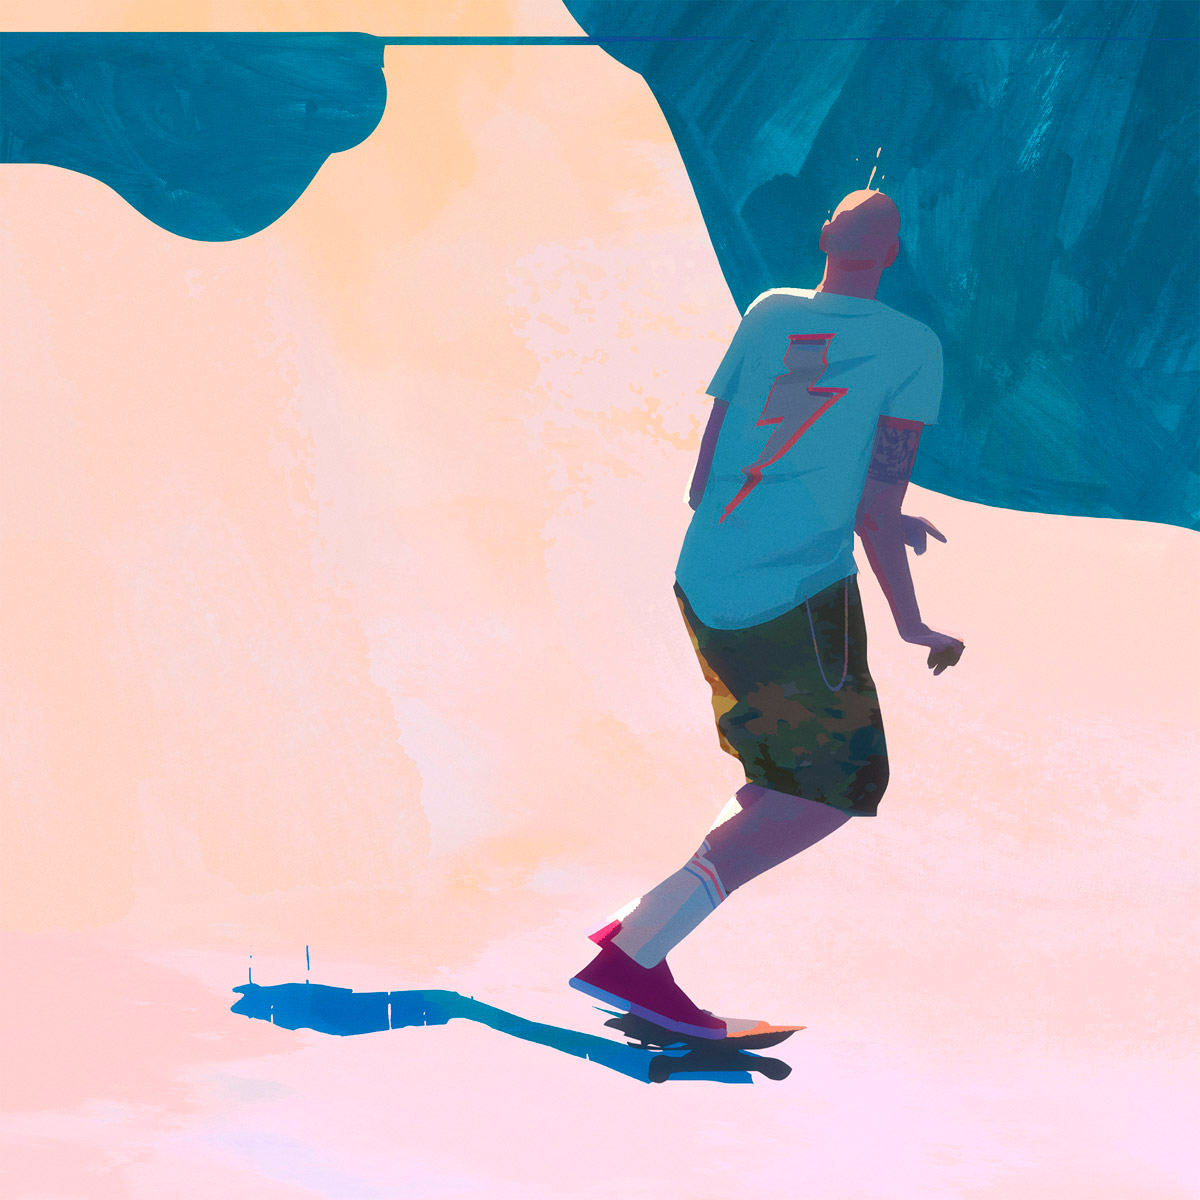 Surreal Dreamscapes: Illustrations by Victor Mosquera